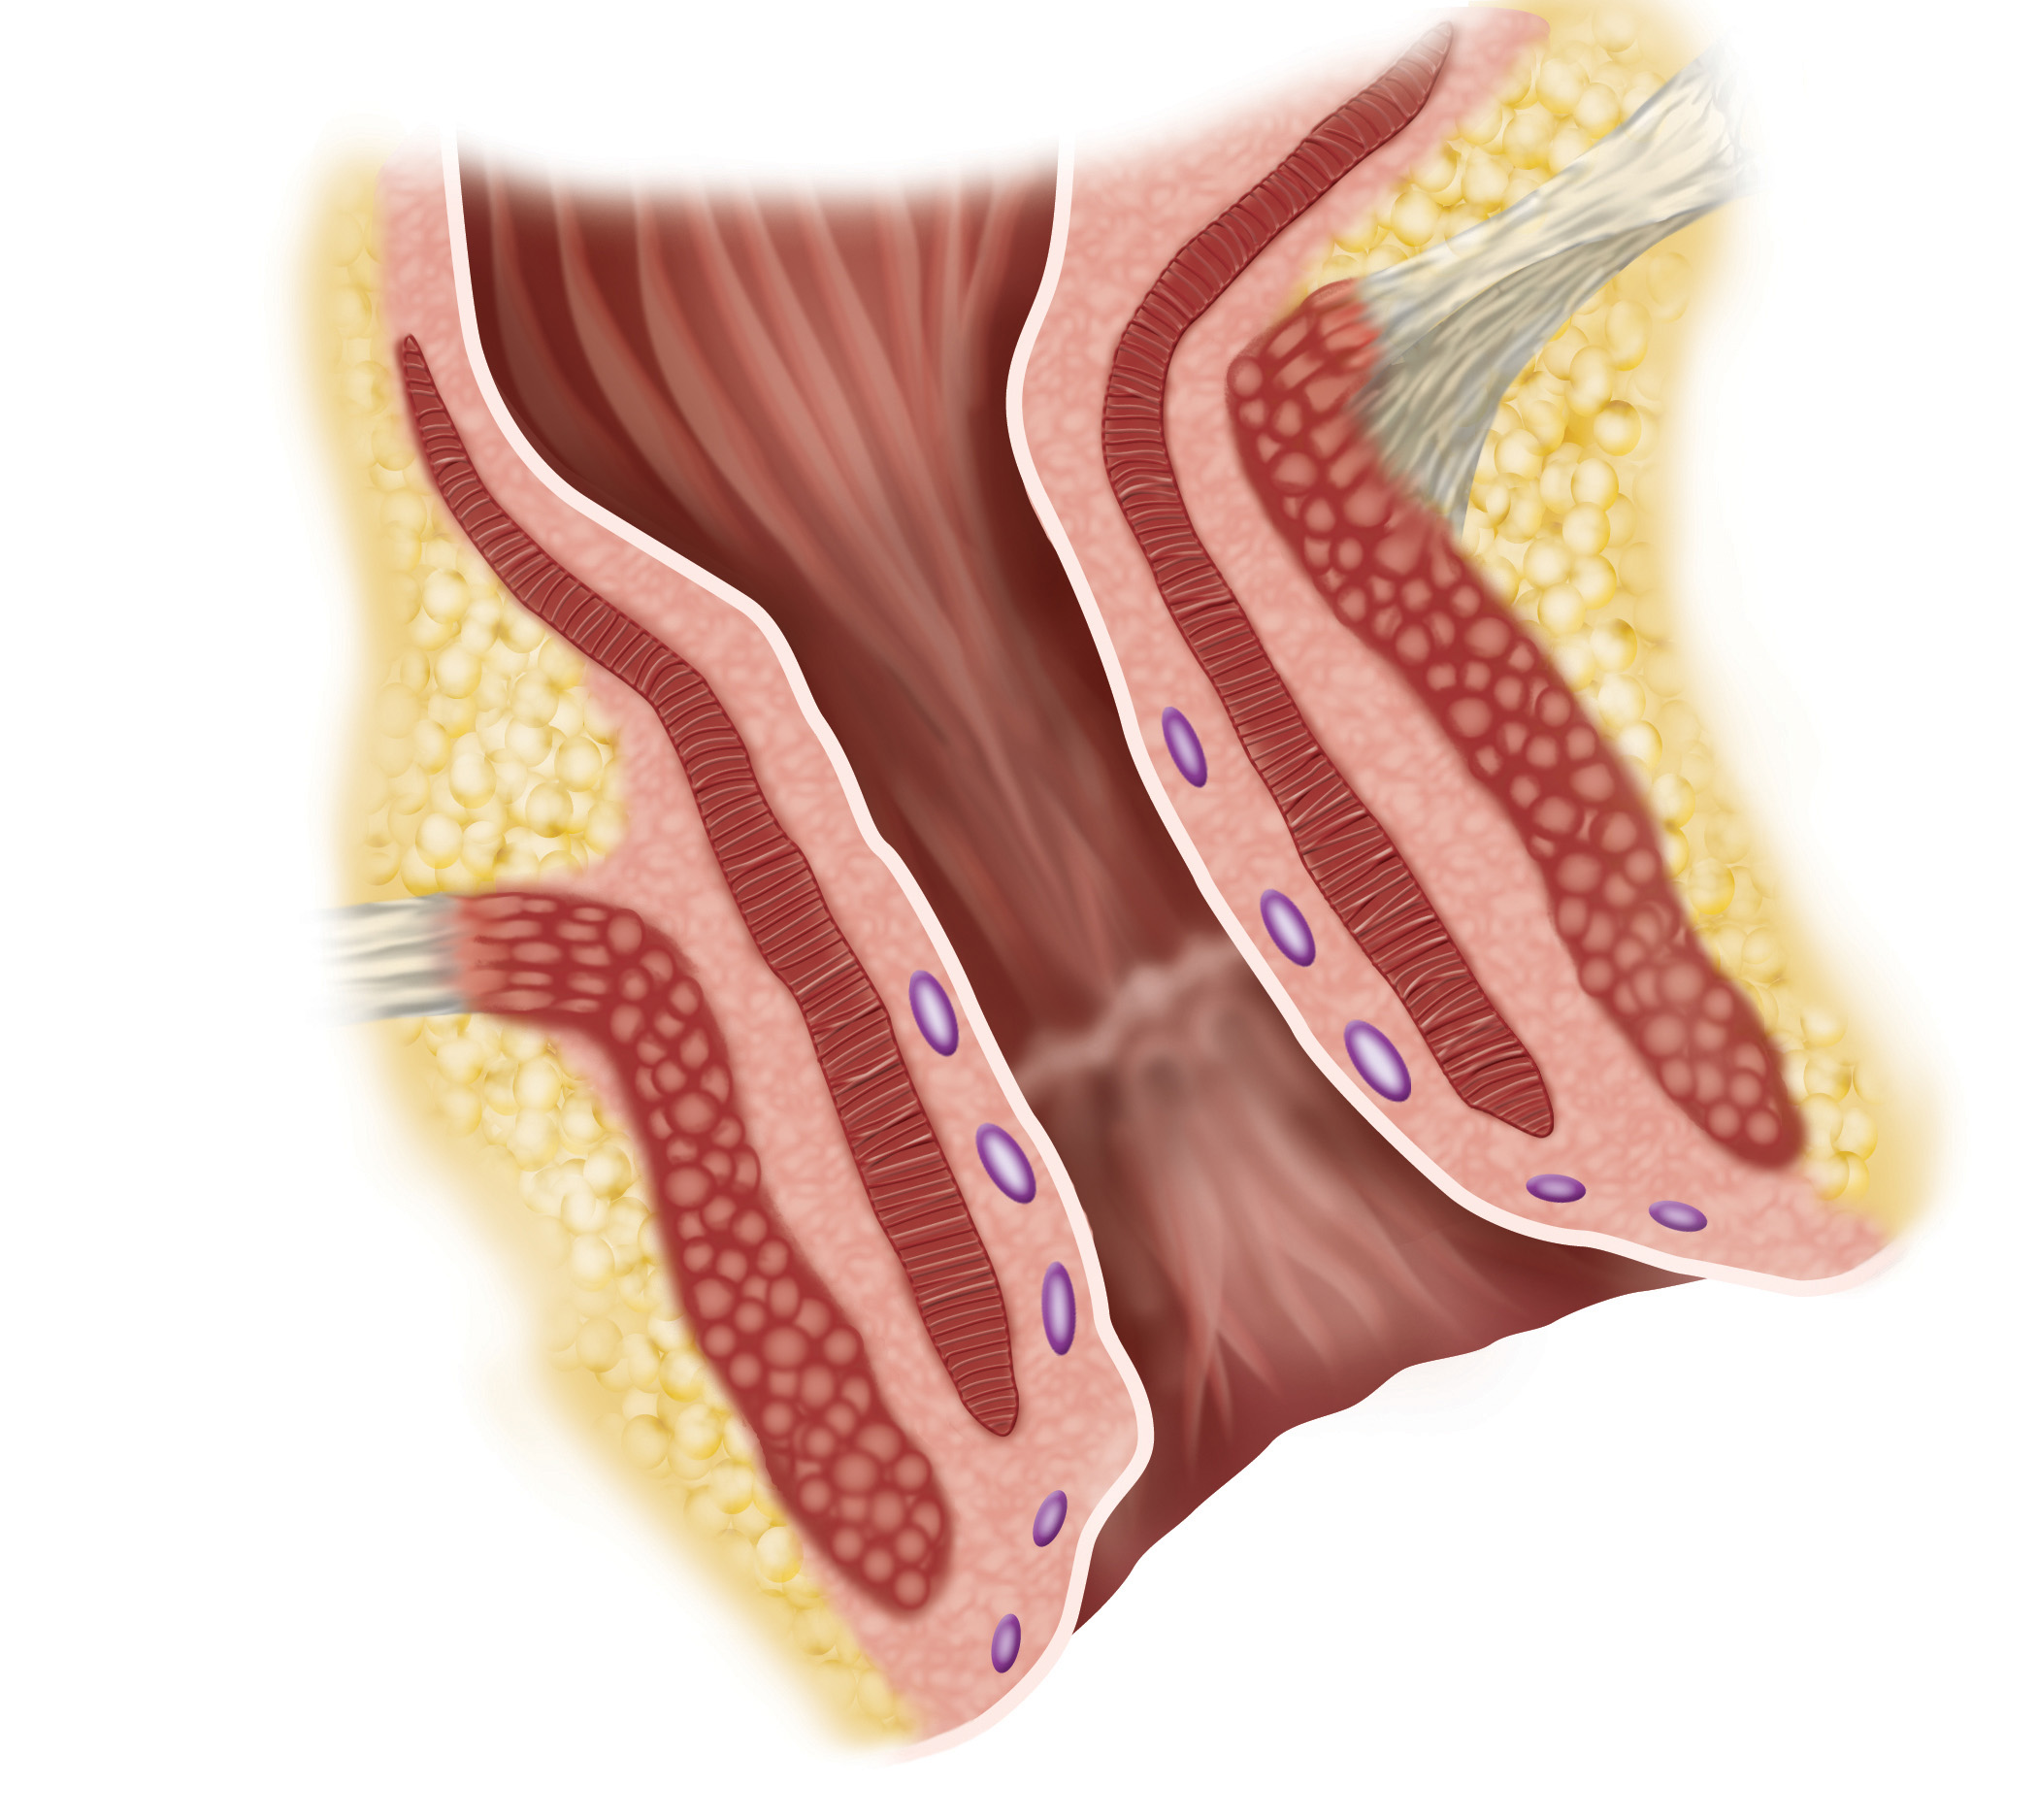 Fecal Incontinence is the inability to control bowel movements due to a damaged or weak anal sphincter muscle.